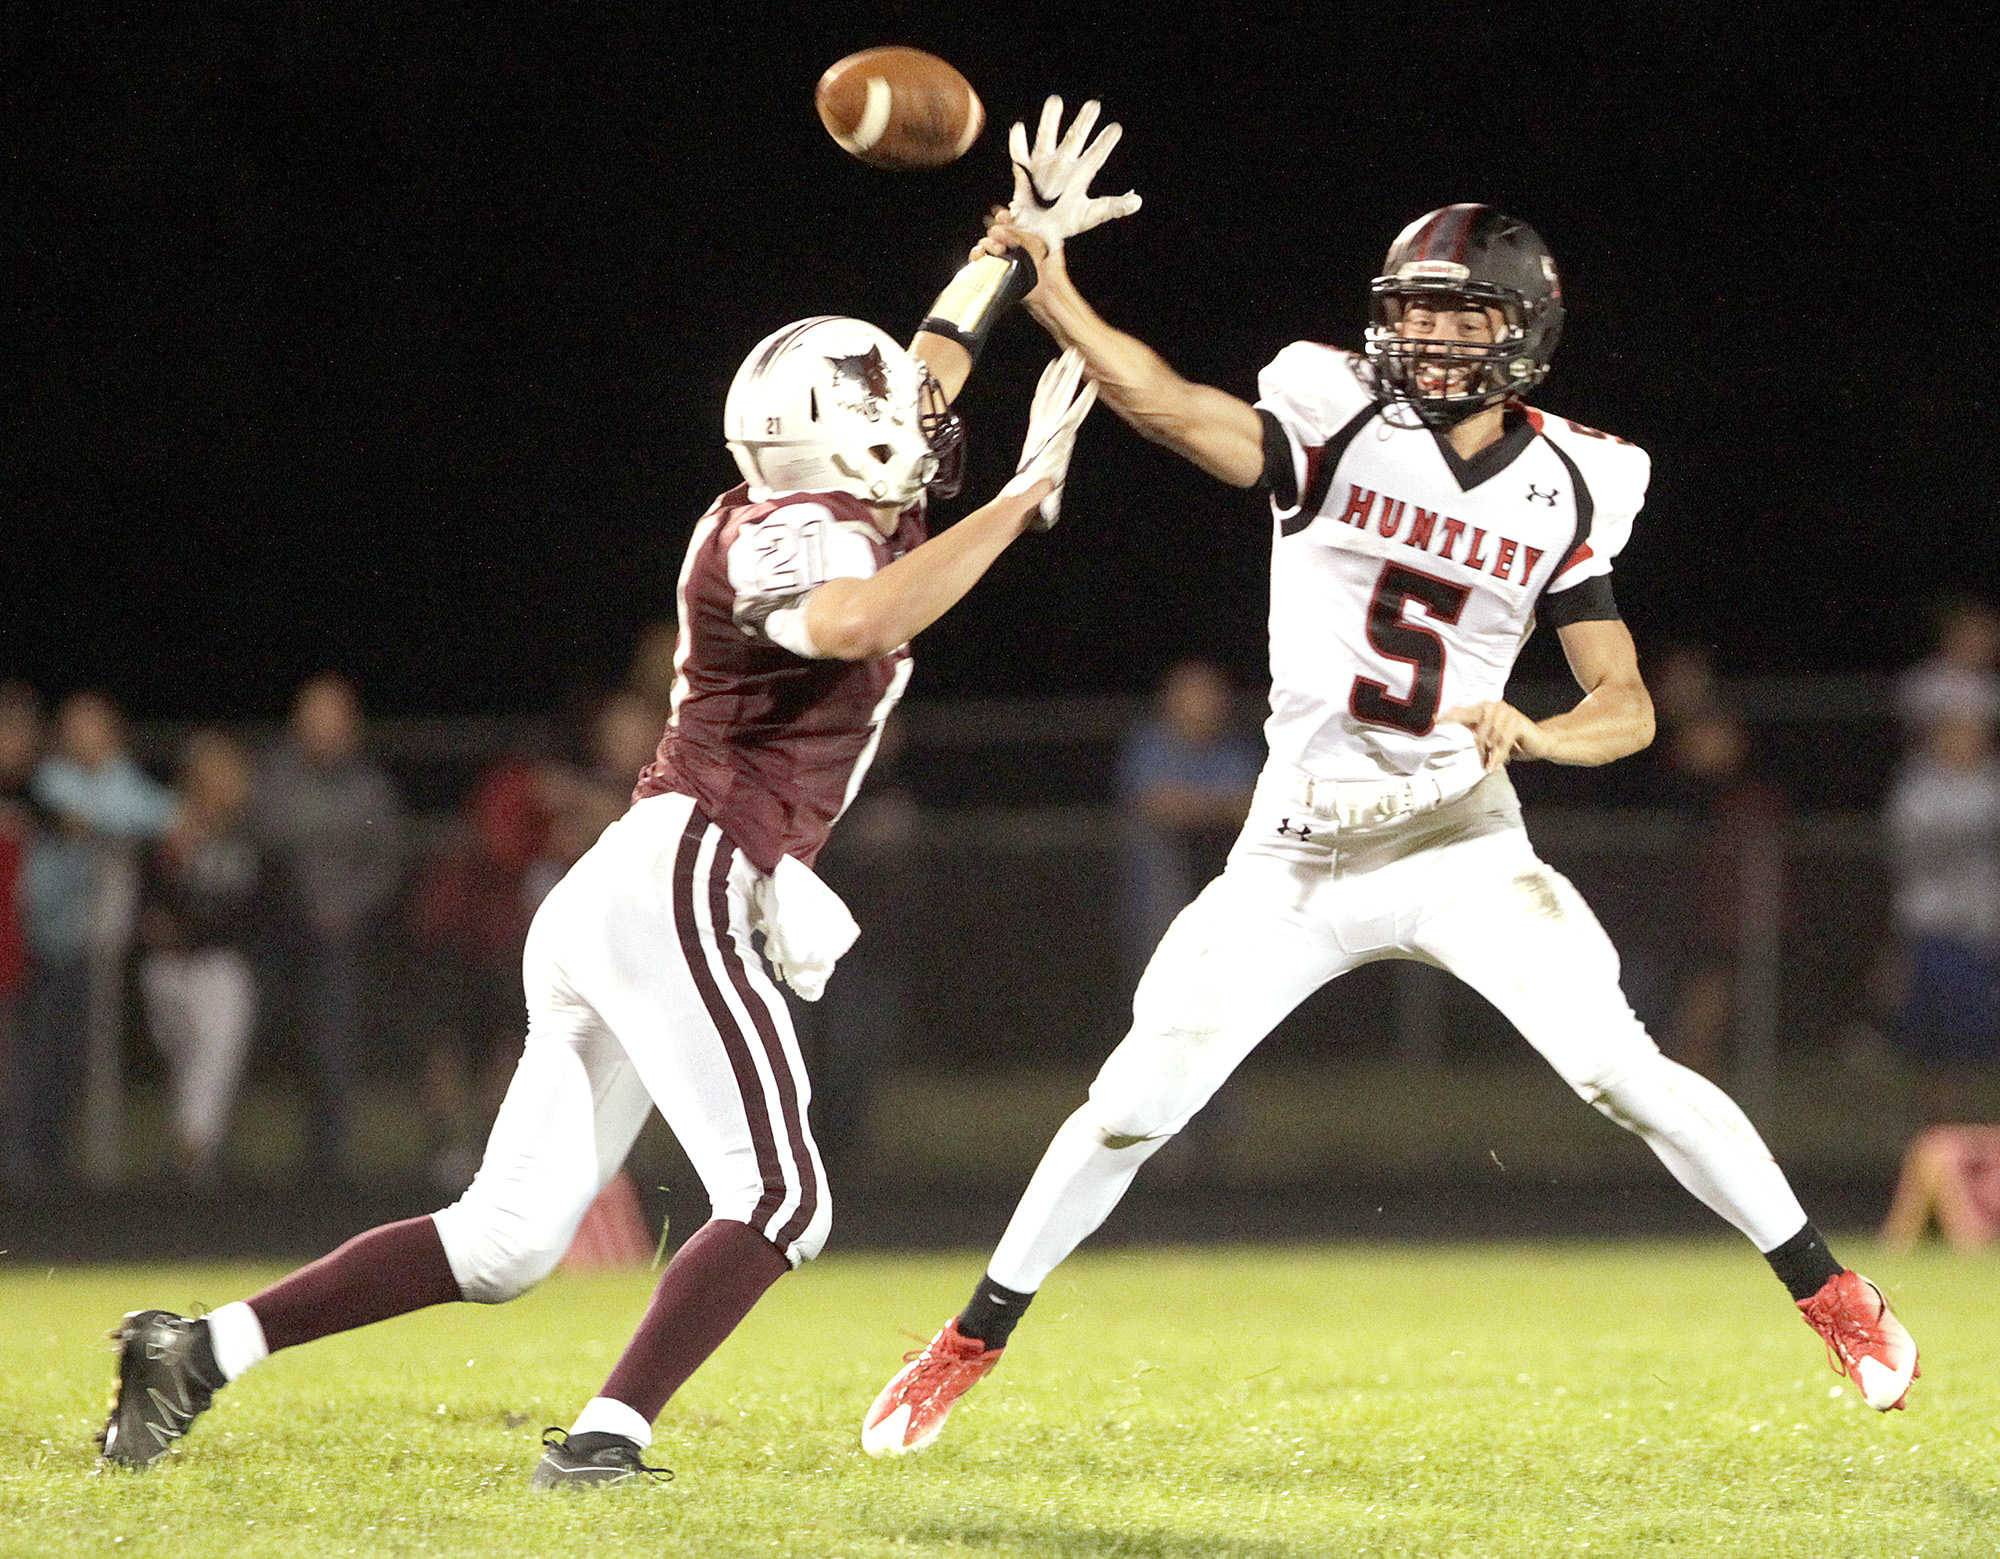 Prairie Ridge's F. Joseph Perhats hurries Huntley's Eric Mooney in the first half on Friday.